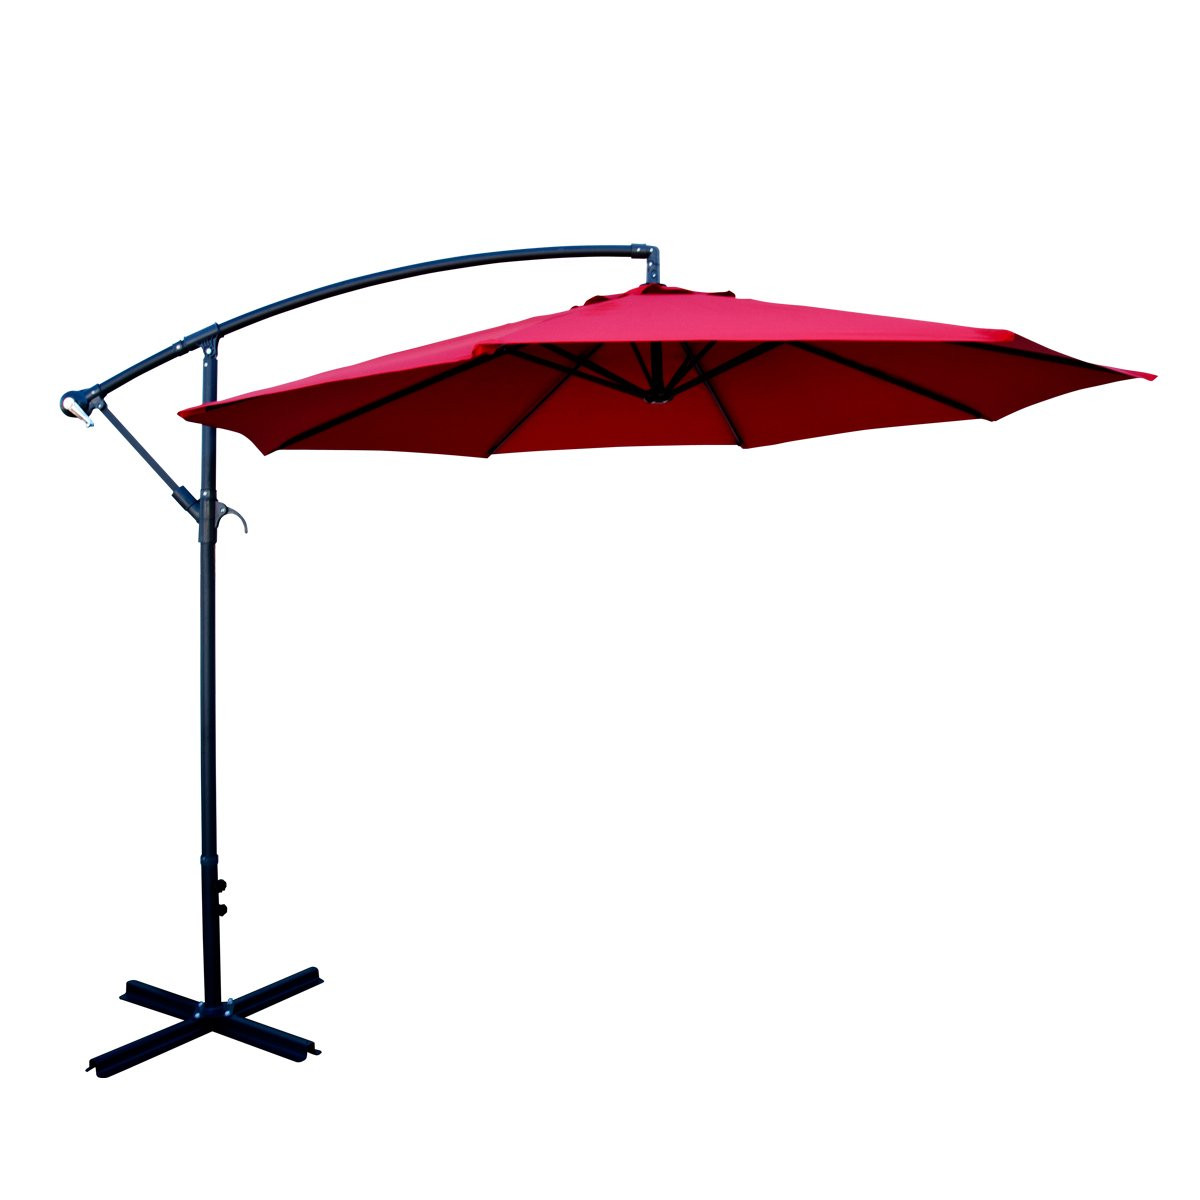 What Is The Best Rated Offset Or Cantilever Umbrella For